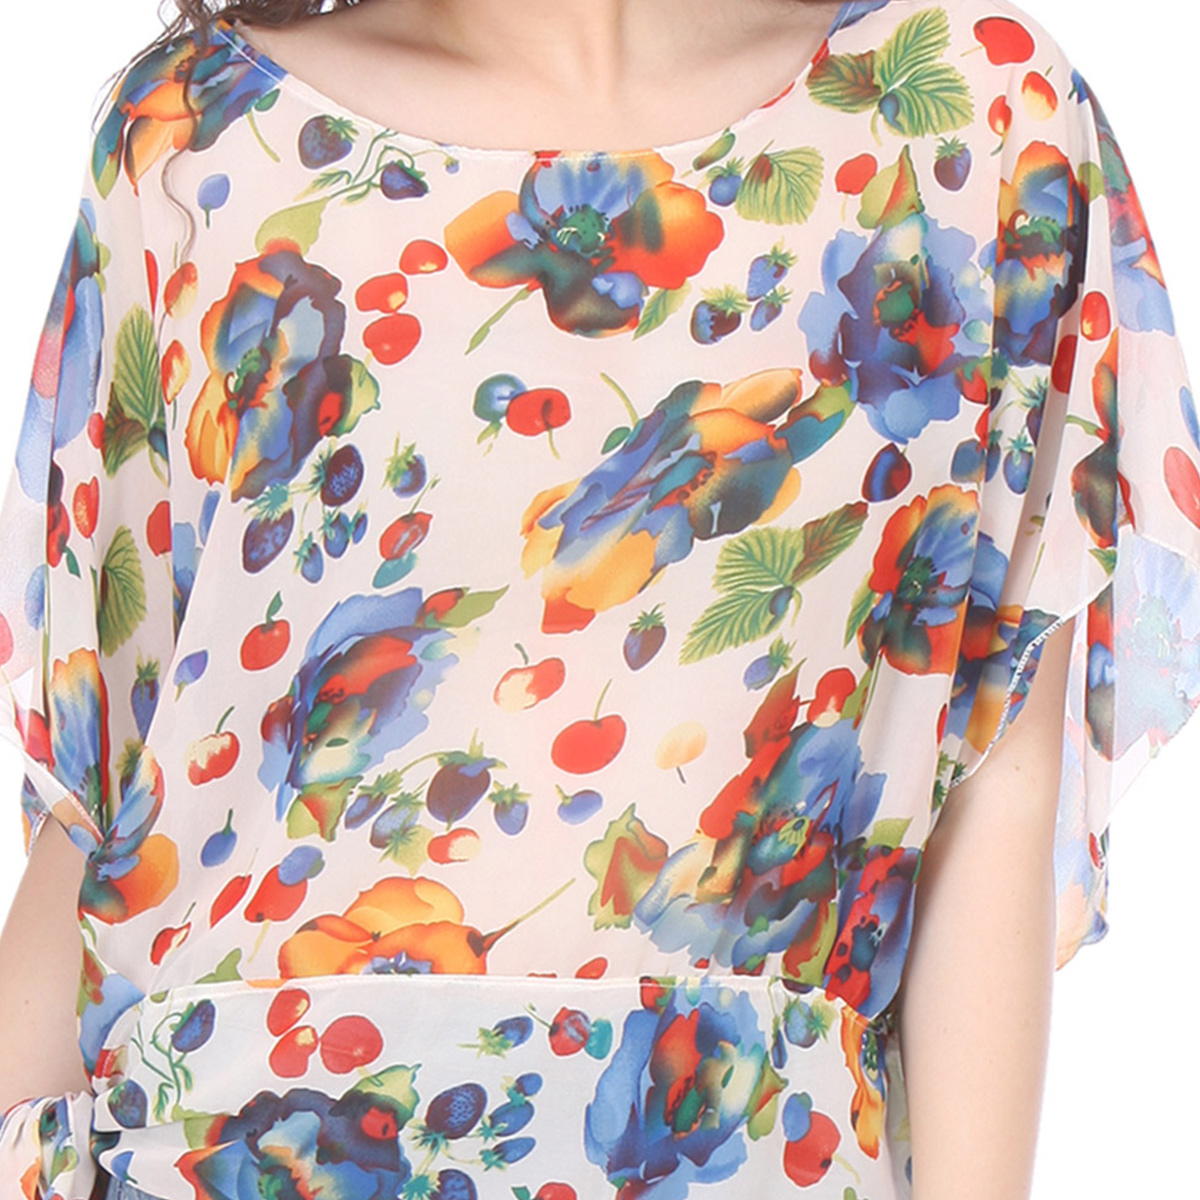 Cream Colored Chiffon Floral Print Top